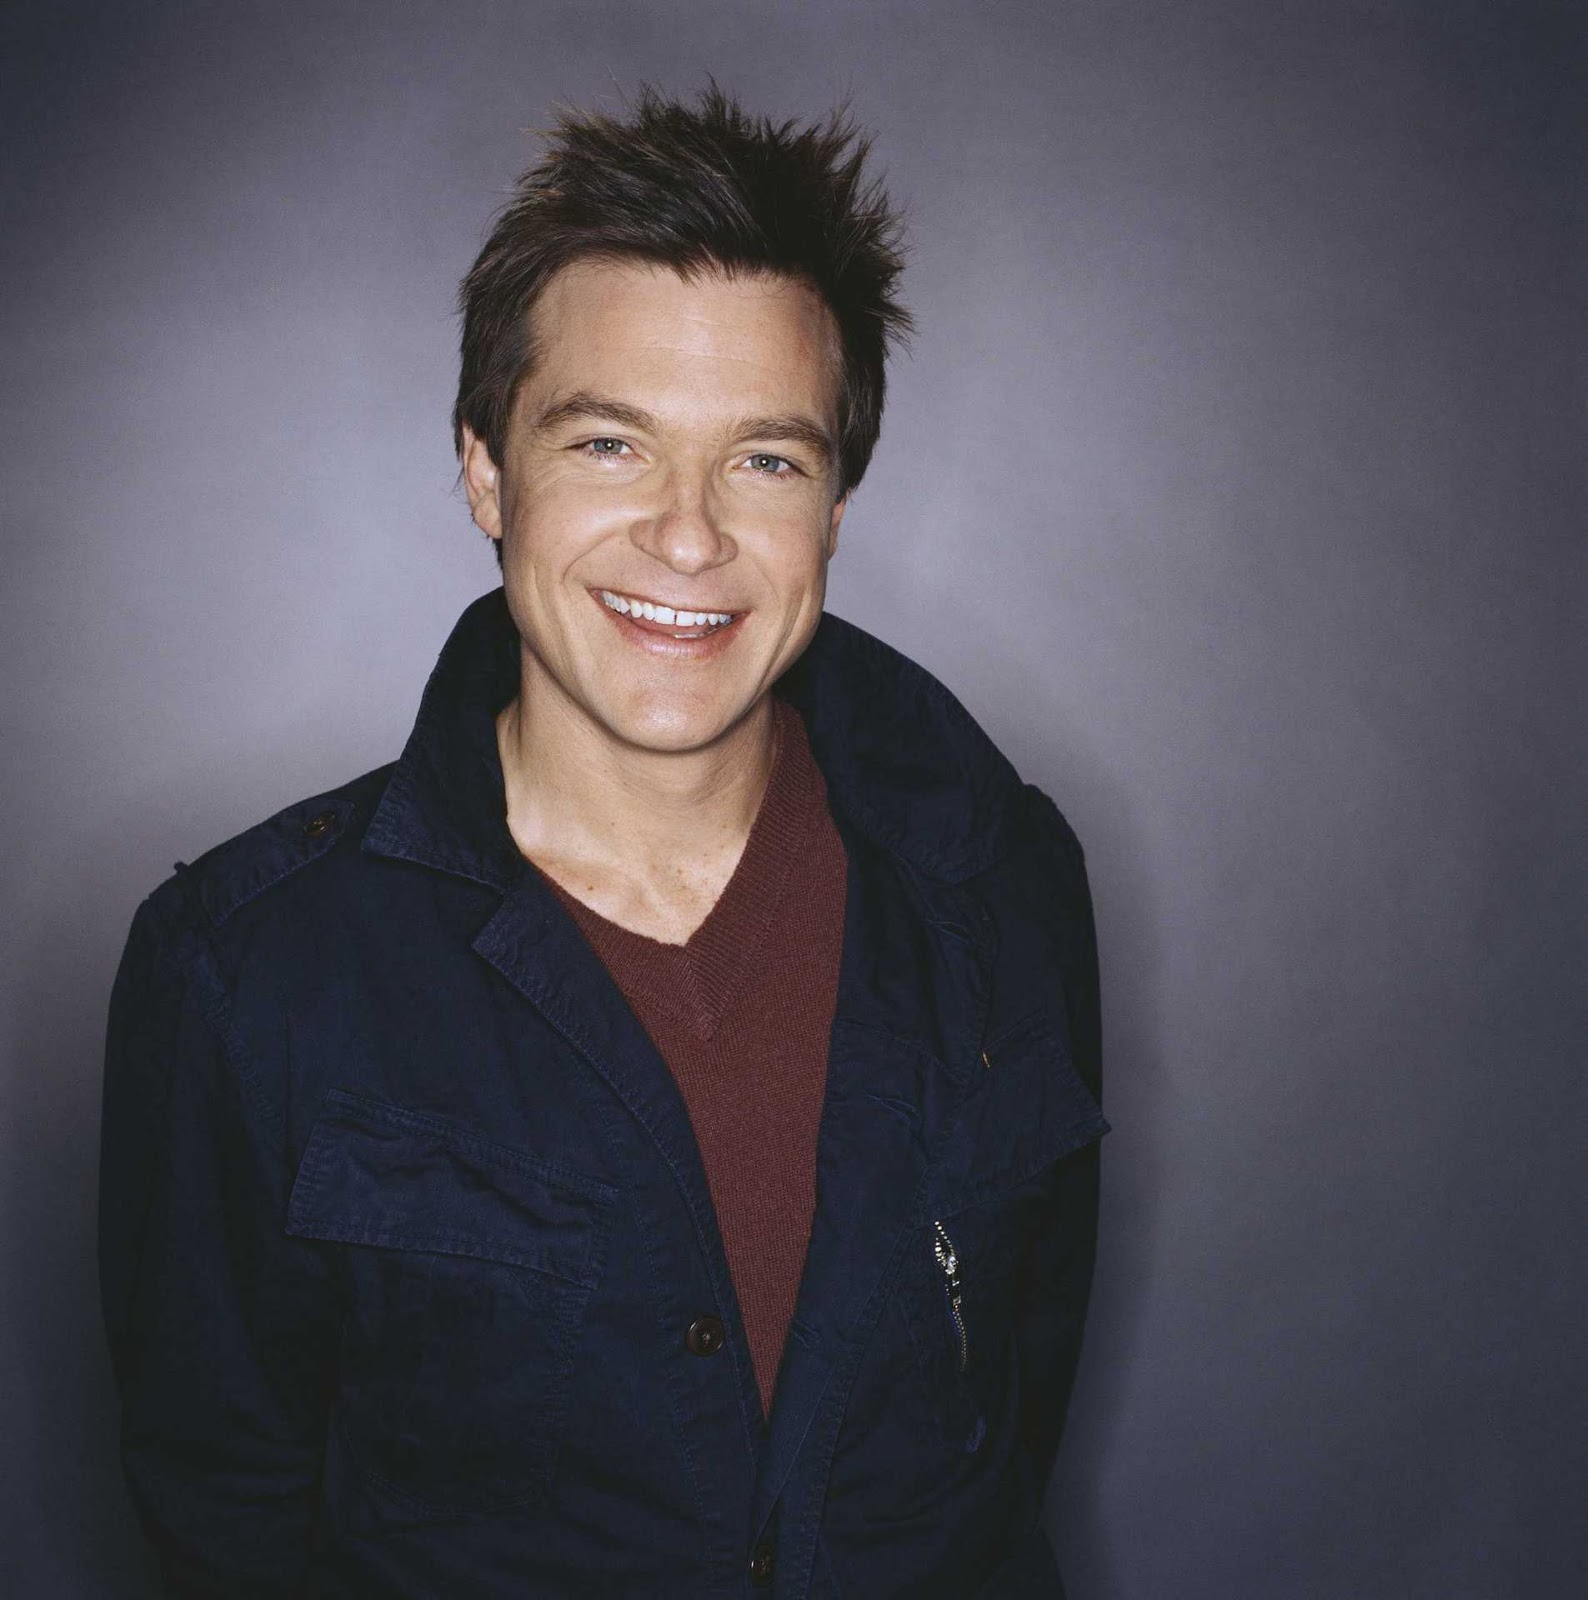 Rider Thus Rendering Jason Bateman A True And A Handsome Winner